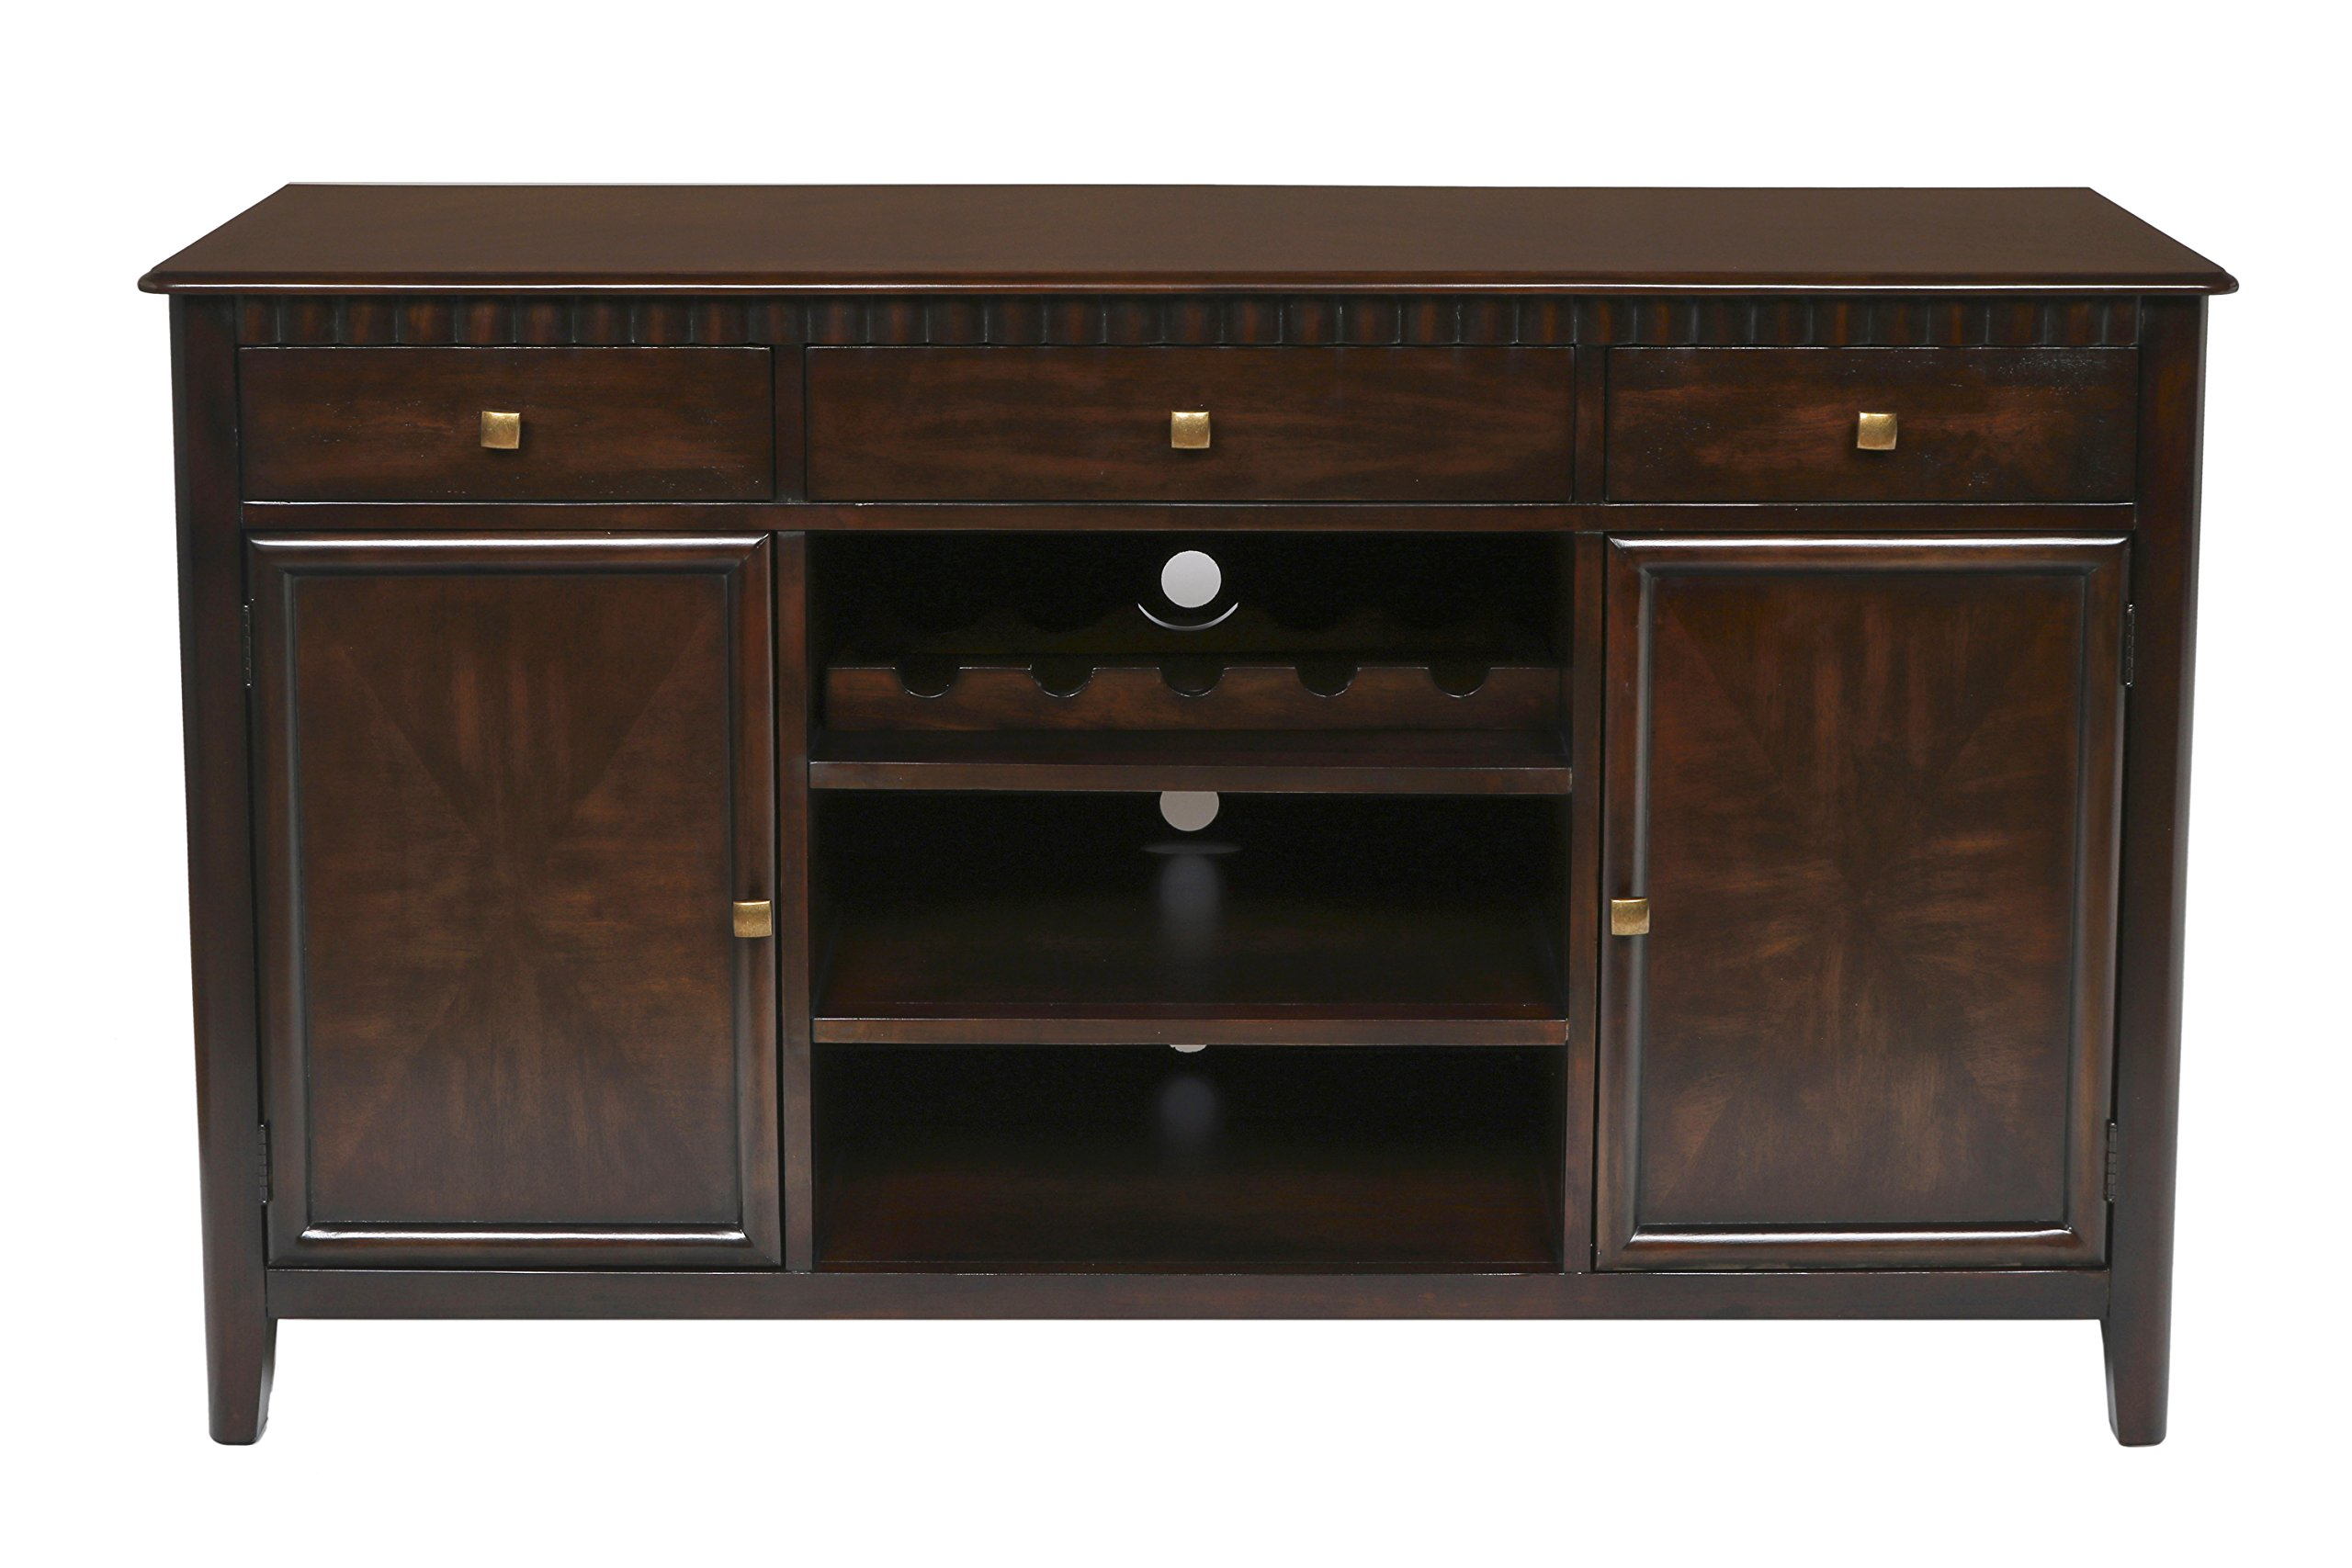 New Classic Edgemont Entertainment Console/Server, Distressed Walnut